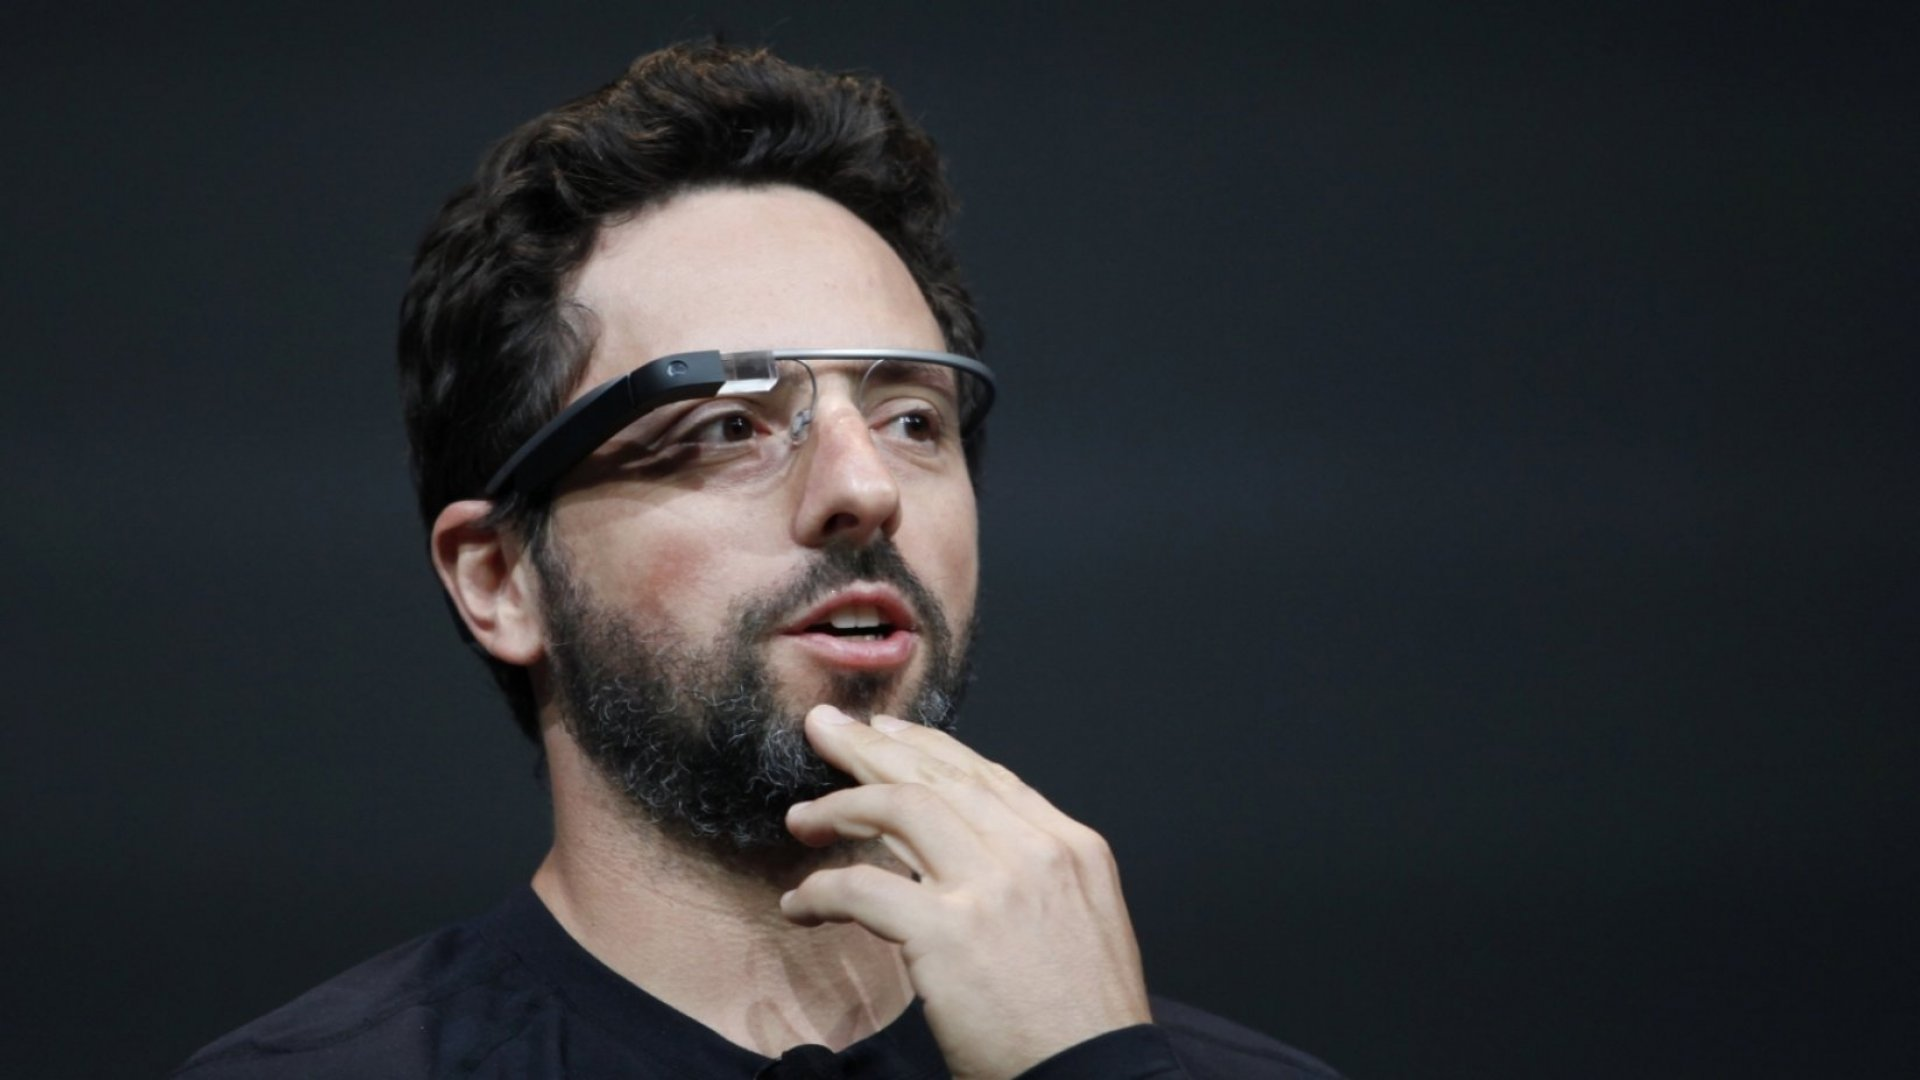 Sergey Brin, co-founder of Google, appears with the Google Glass to introduce the Google Glass Explorer edition during Google's annual developer conference, Google I/O, on June 27, 2012.